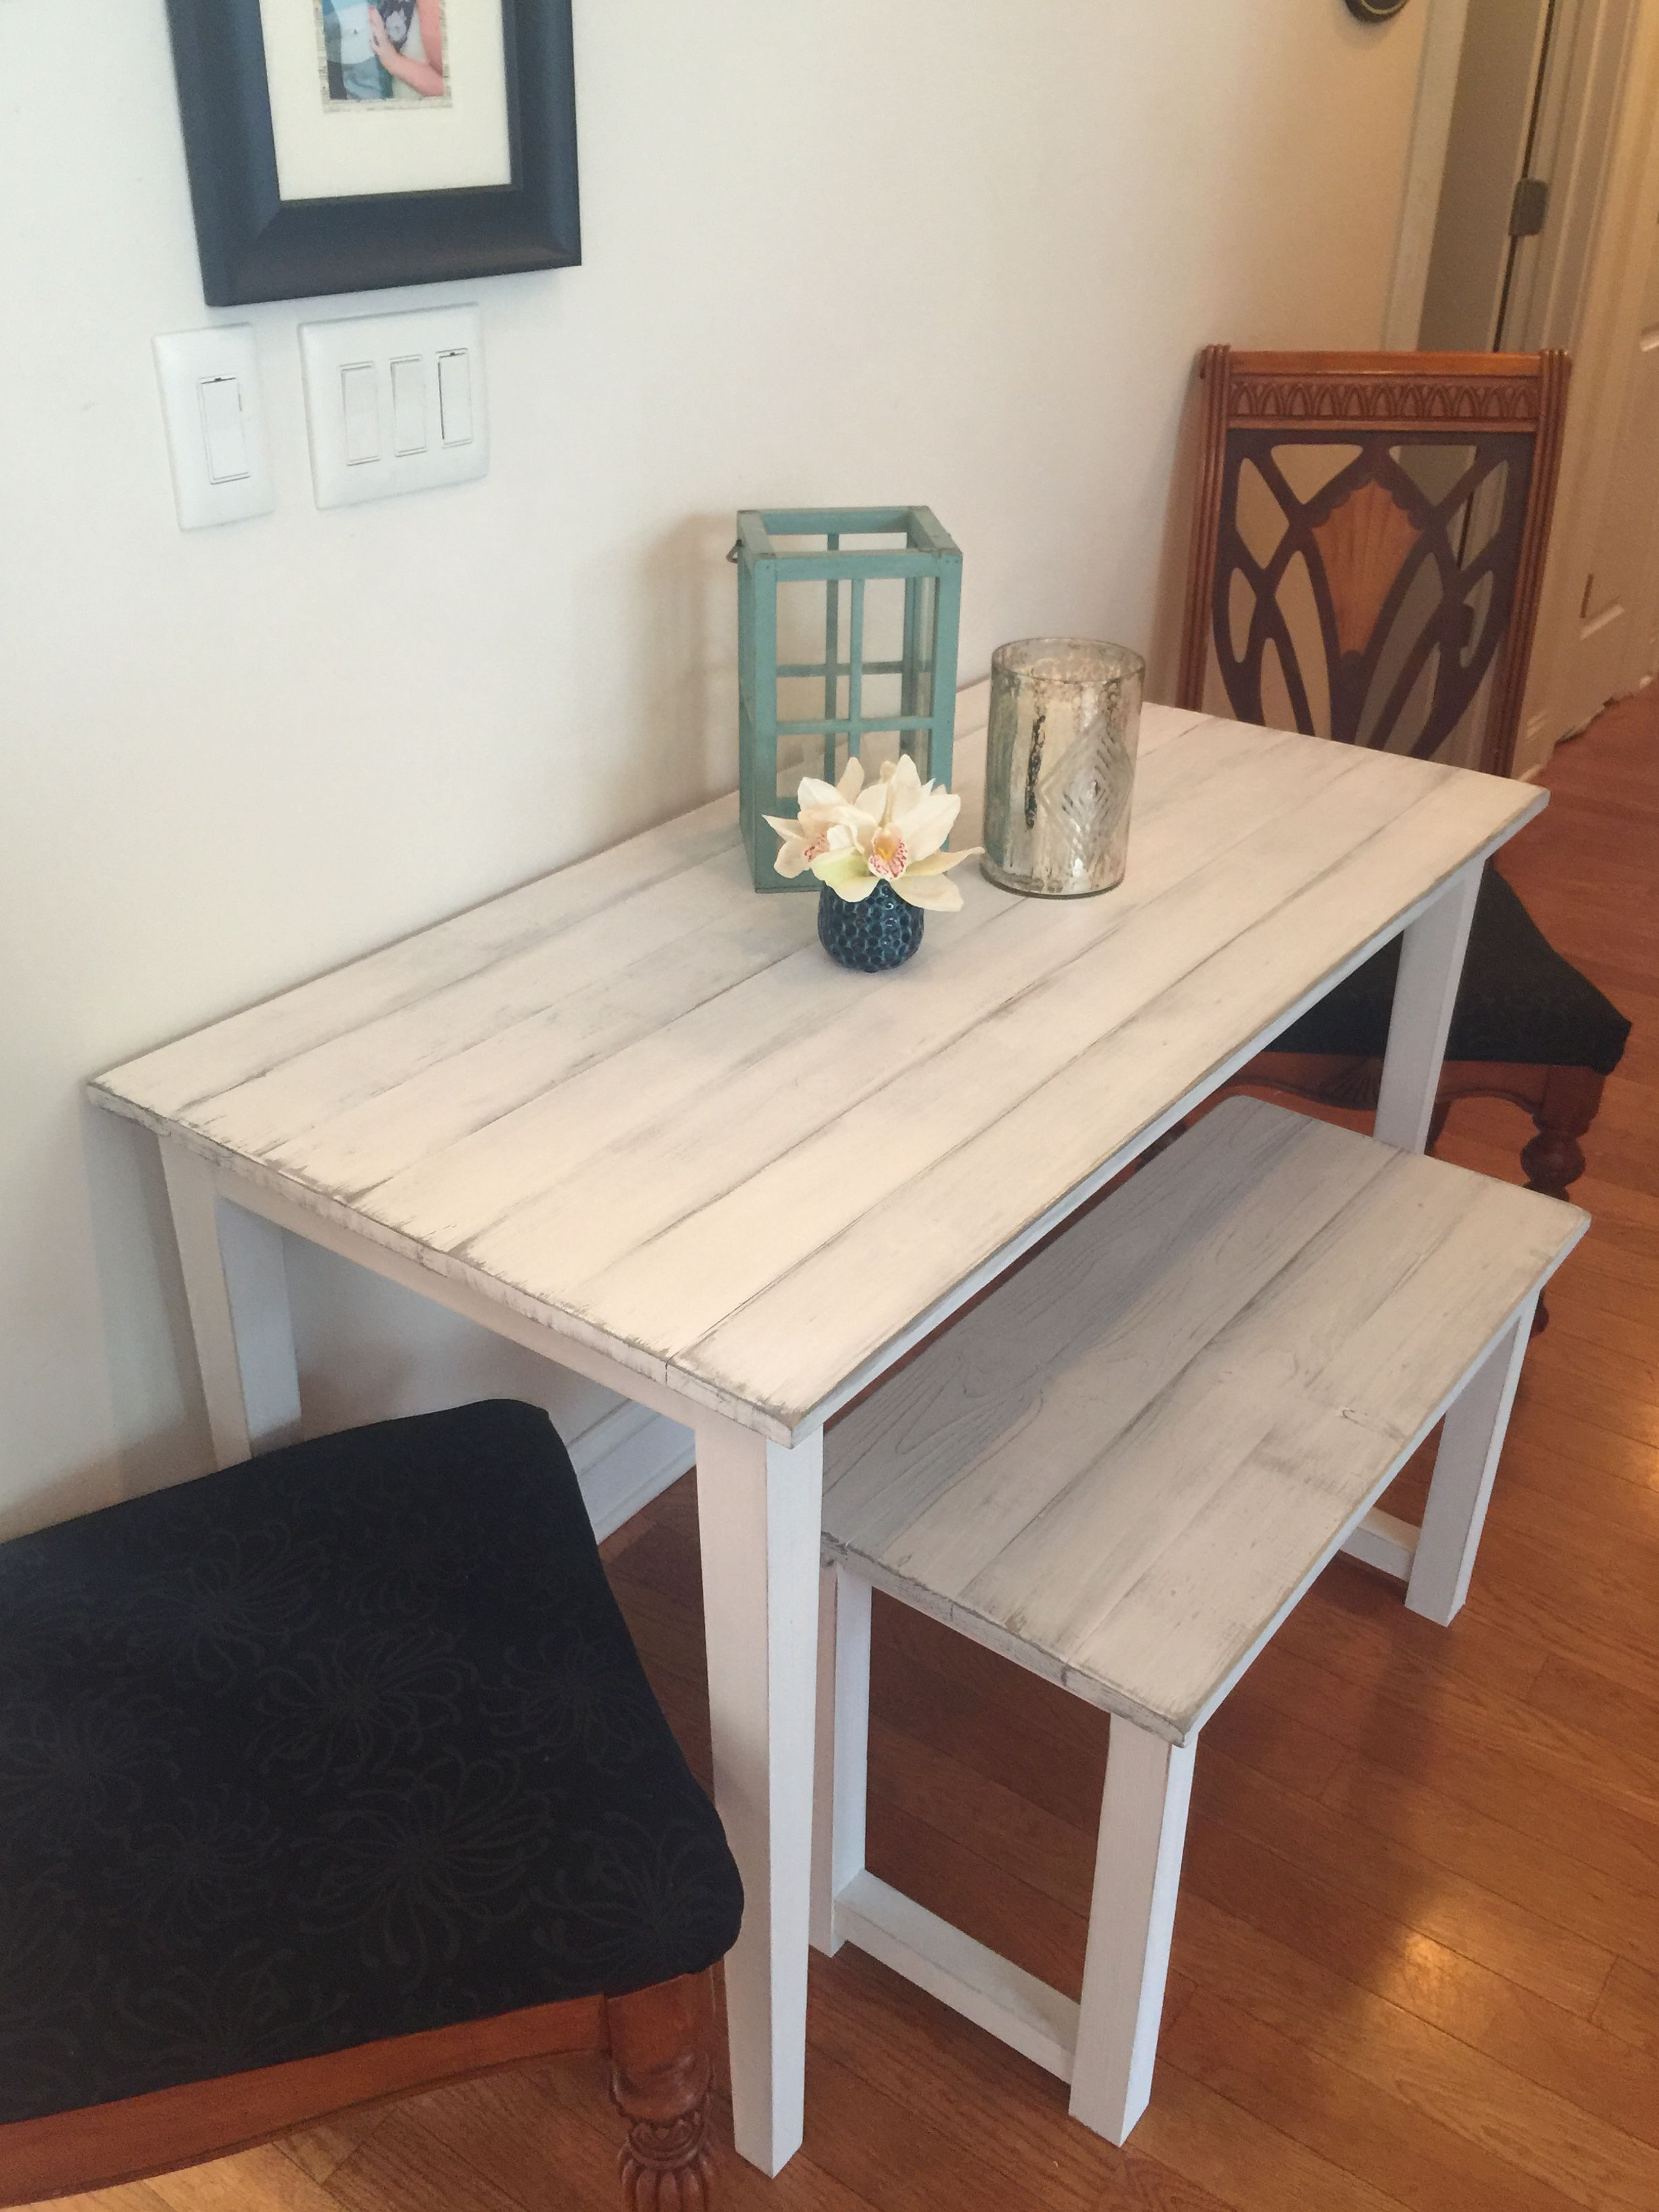 Small Farmhouse Table For Small Room Bench And Distressed White Washed Wood Decorating A Sma Small Farmhouse Table Dining Room Small Farmhouse Kitchen Tables